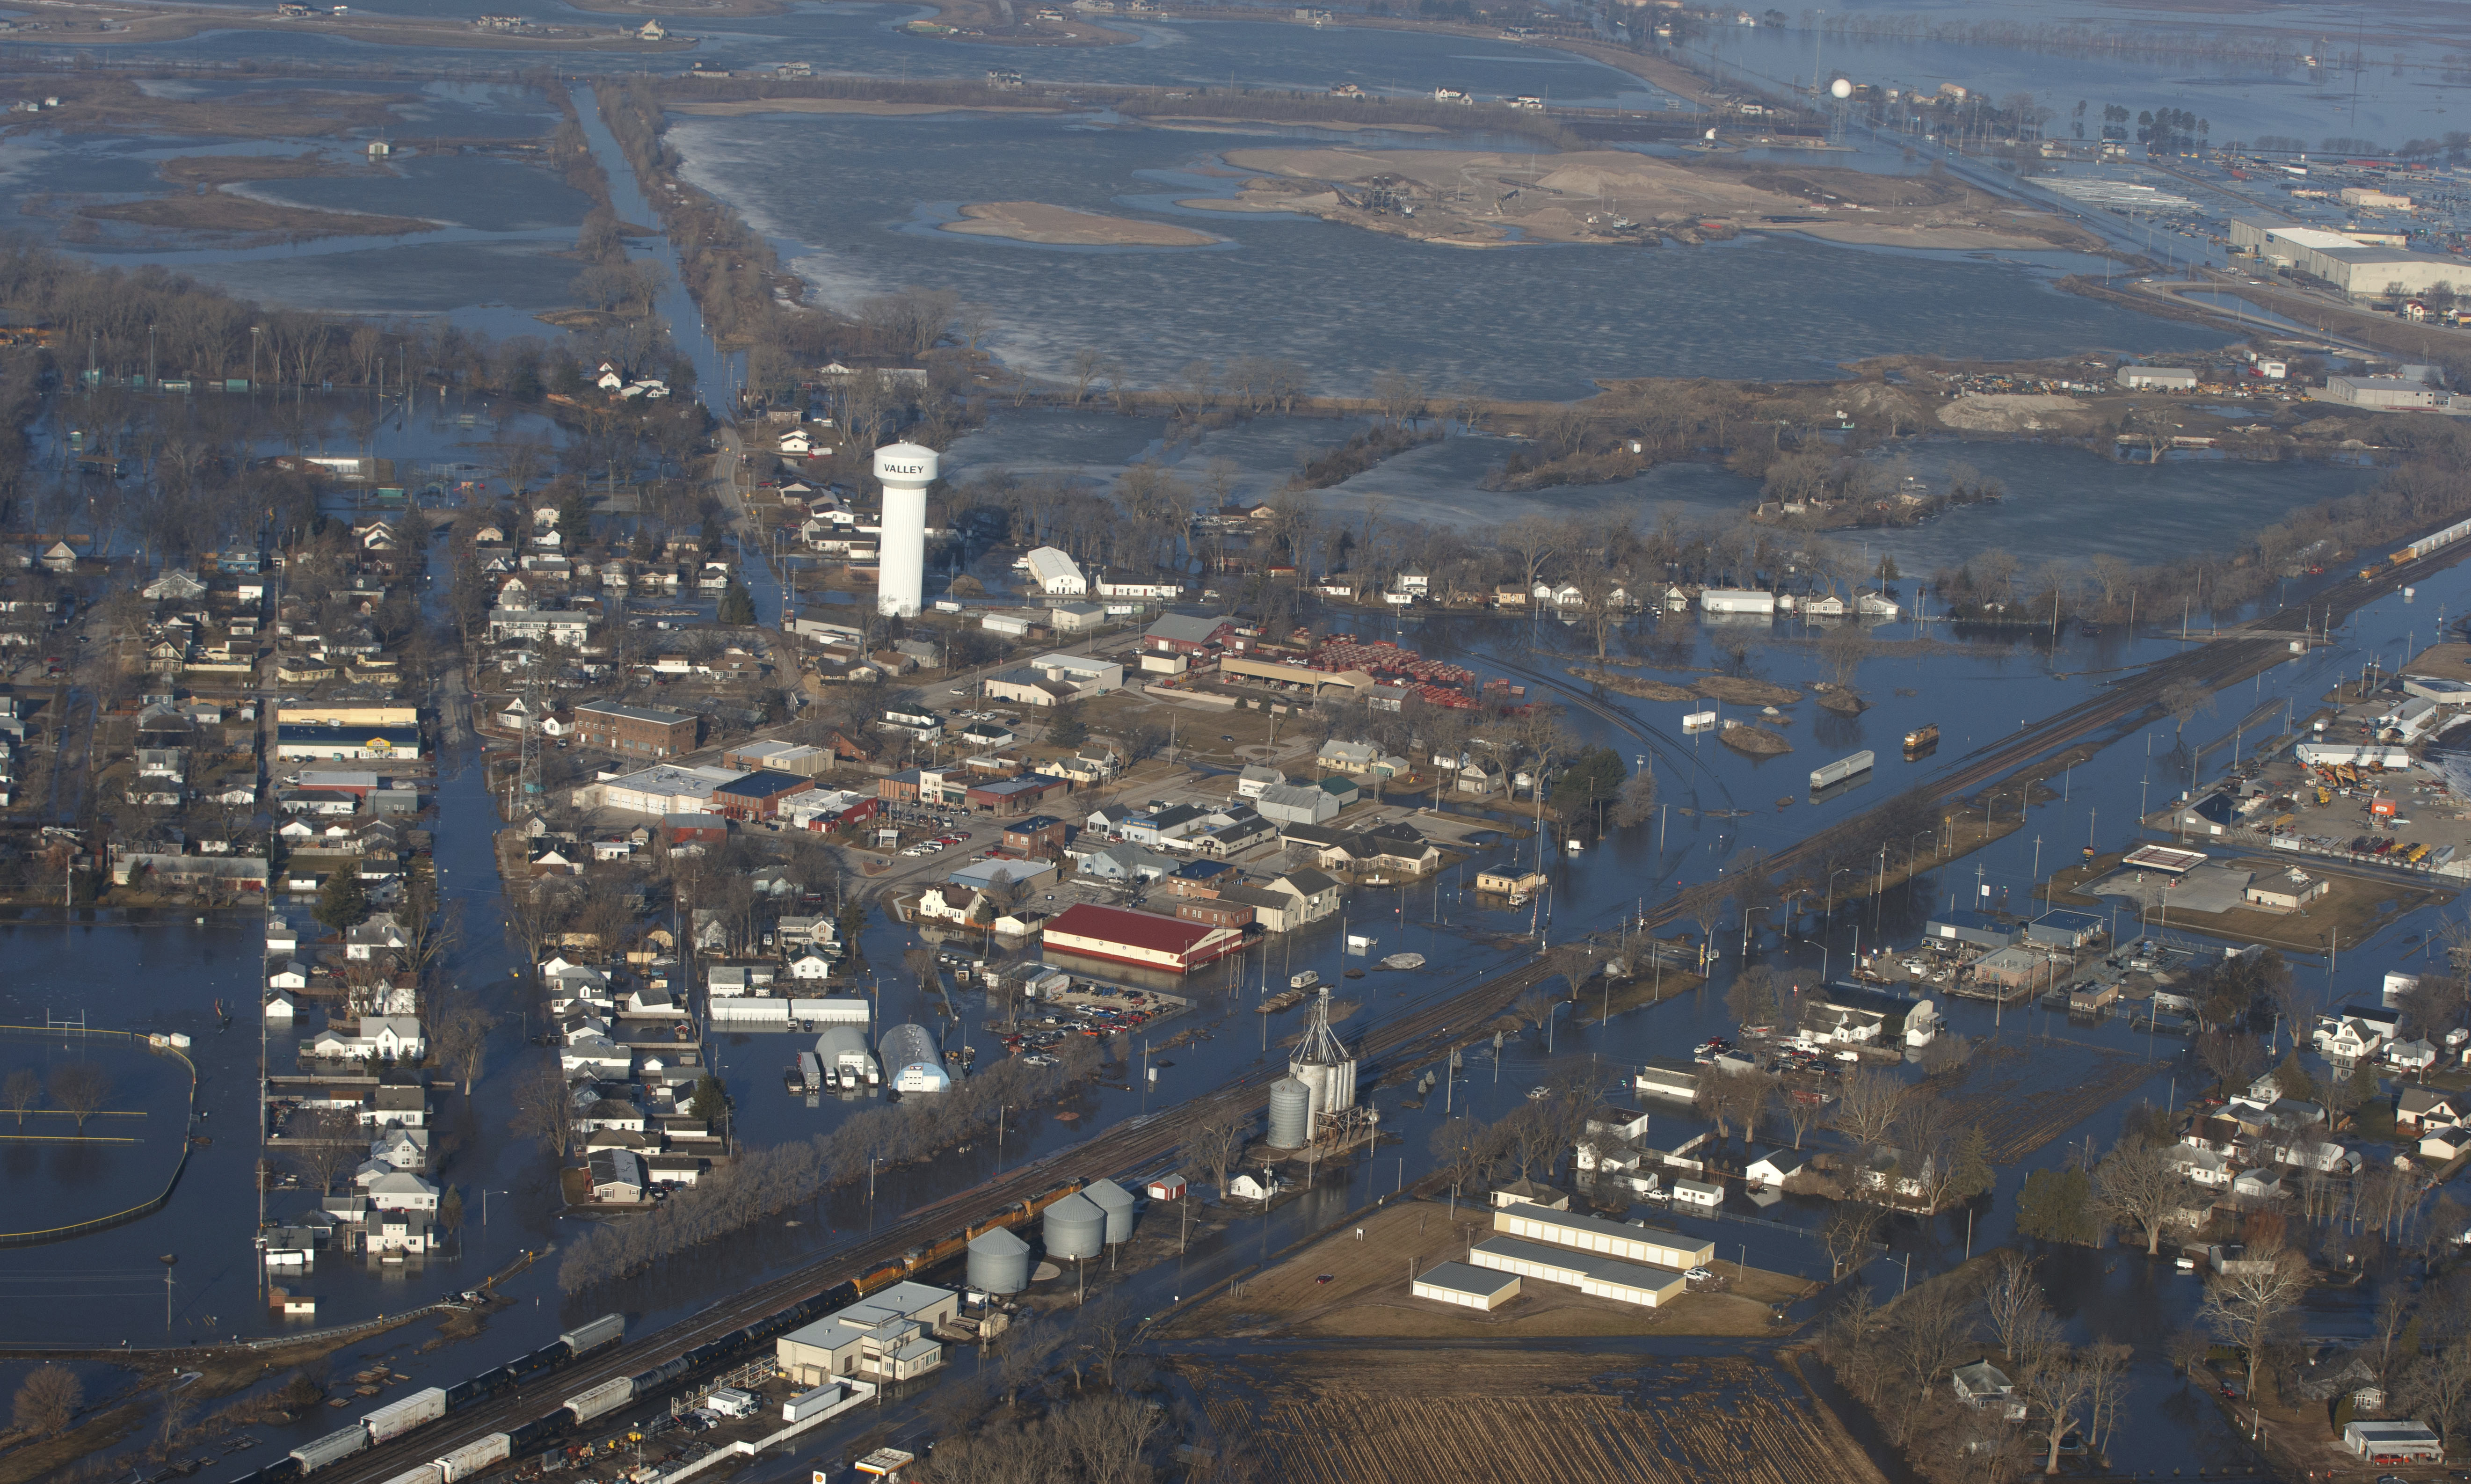 CORRECTS MONTH TO MARCH NOT MAY - The city of Valley is inundated with floodwaters Sunday, March 17, 2019, in Valley, Neb. Hundreds of people were evacuated from their homes in Nebraska and Iowa as levees succumbed to the rush of water.  (Jeff Bundy/Omaha World-Herald via AP)